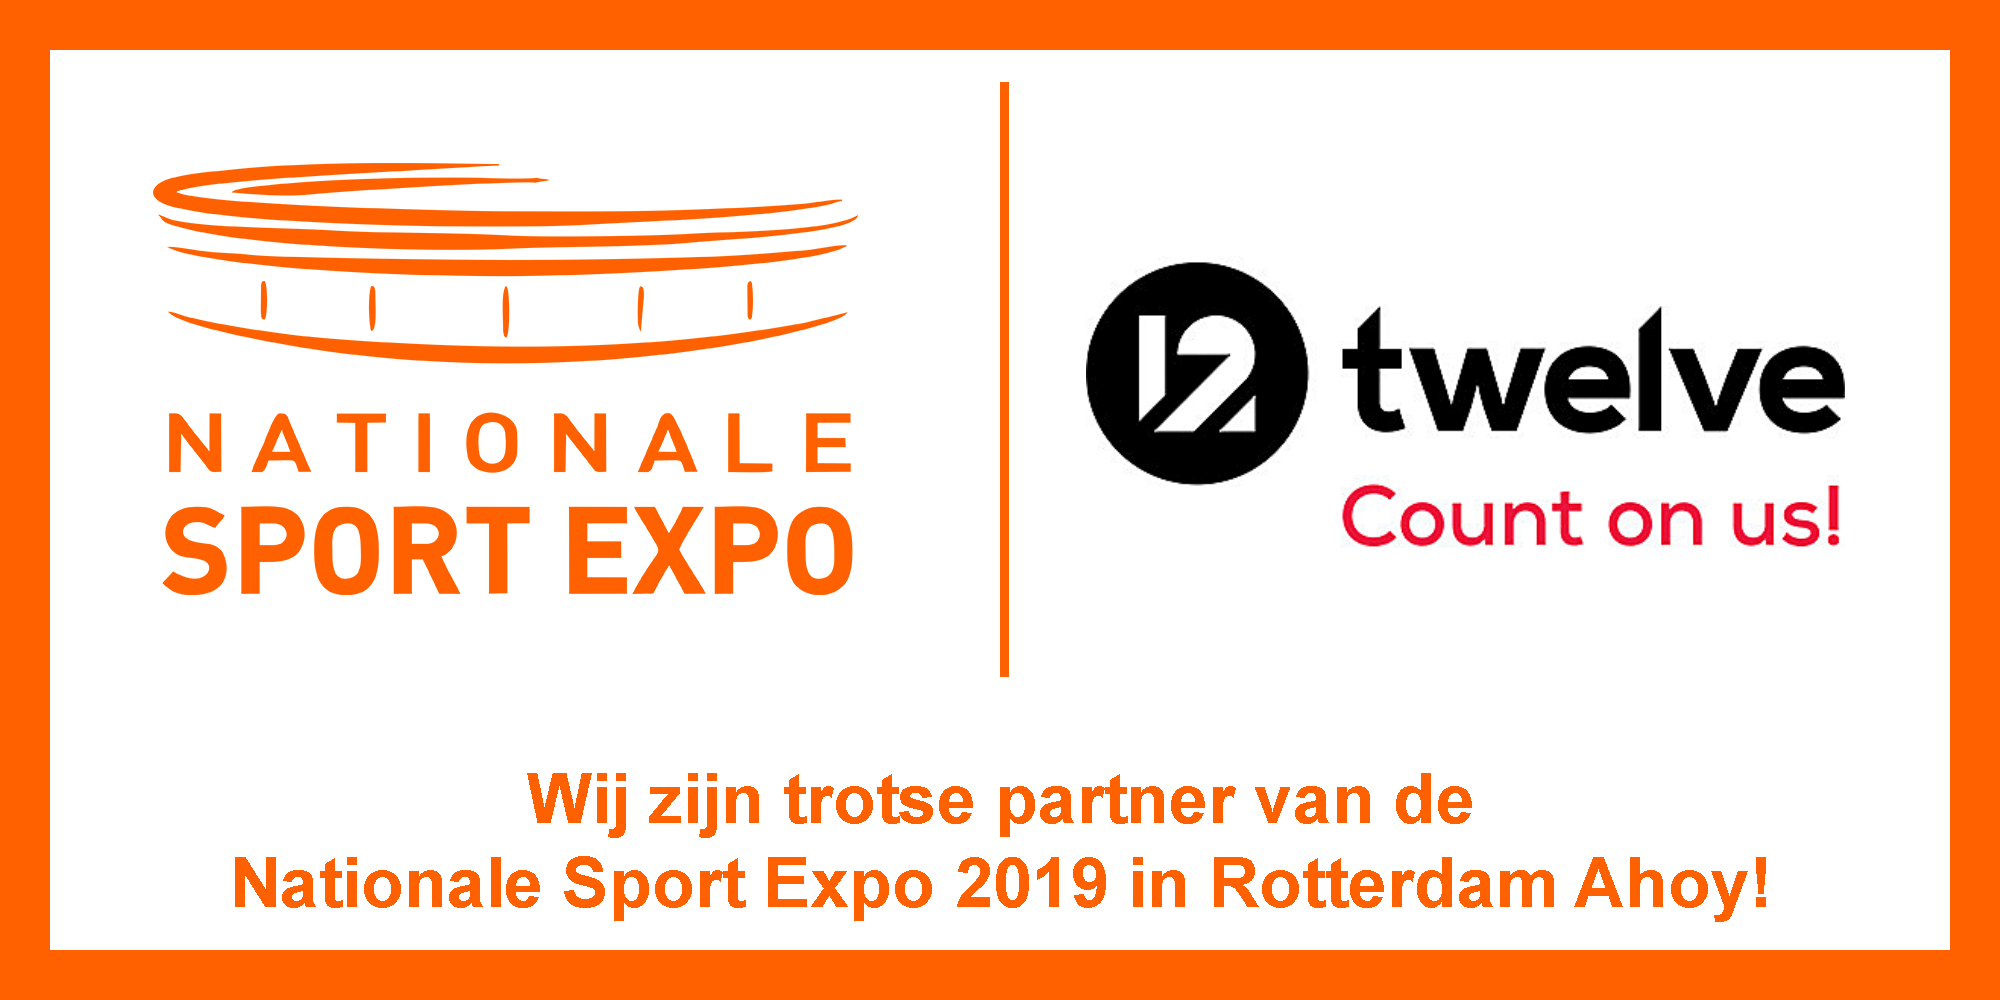 National Sport Expo